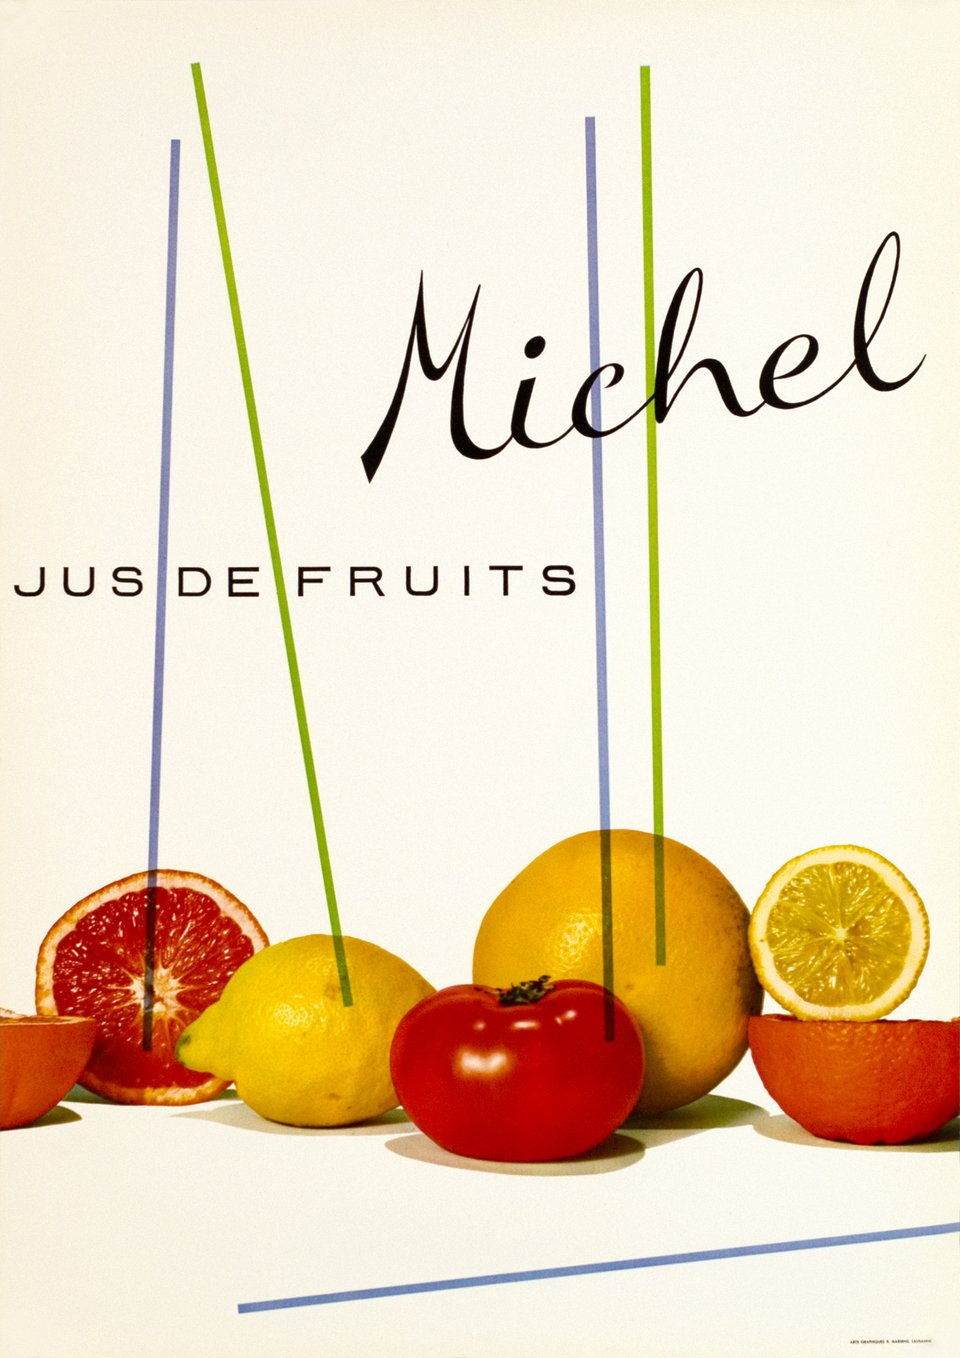 Michel, Jus de fruits - Prix de l'affiche Suisse 1958 – Affiche ancienne – Michel GALLAY – 1958